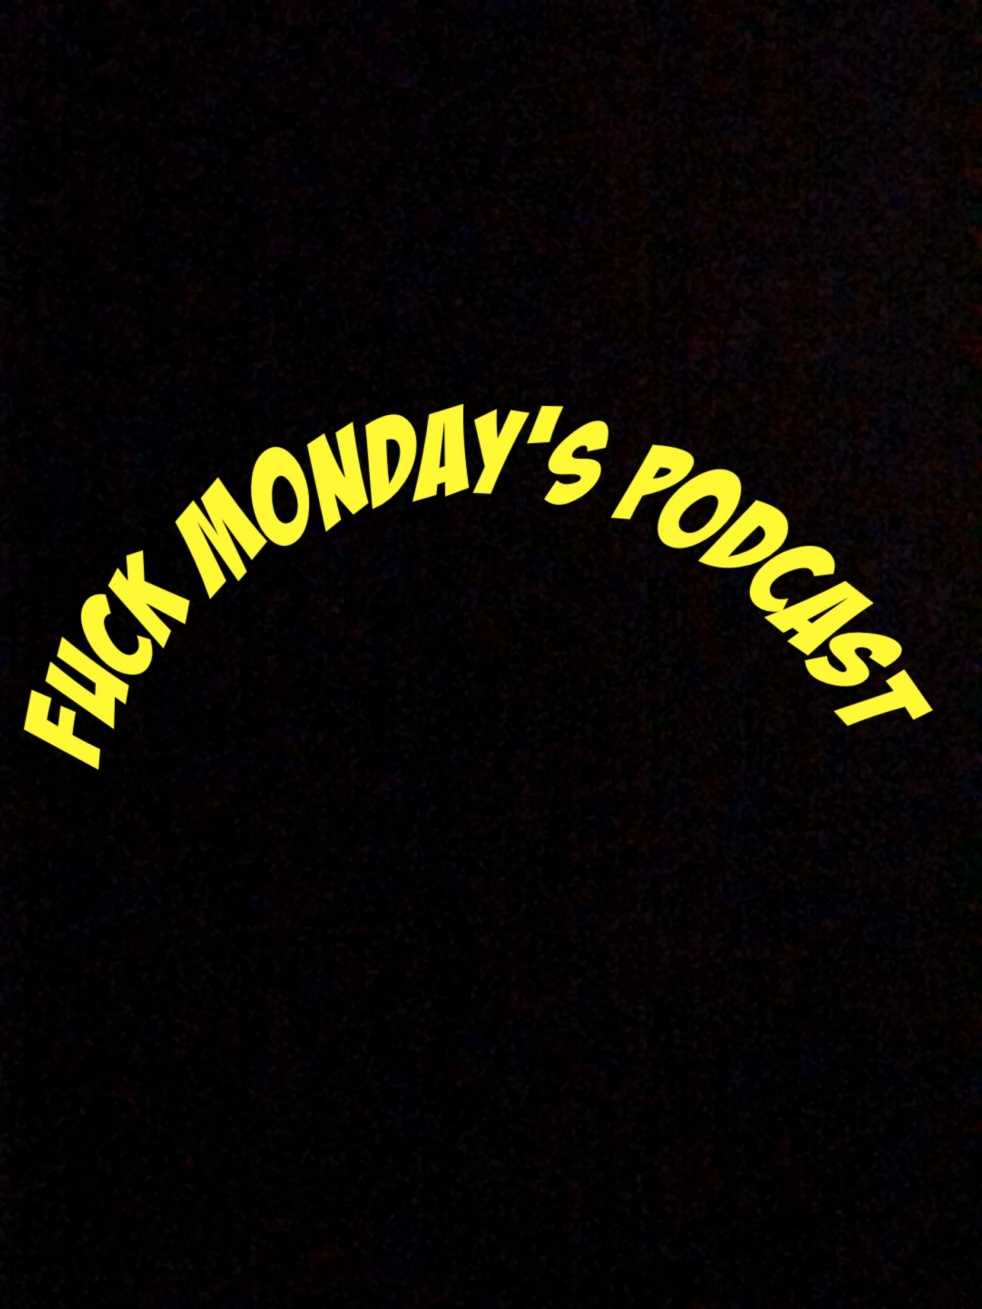 F**k Monday's Podcast - show cover